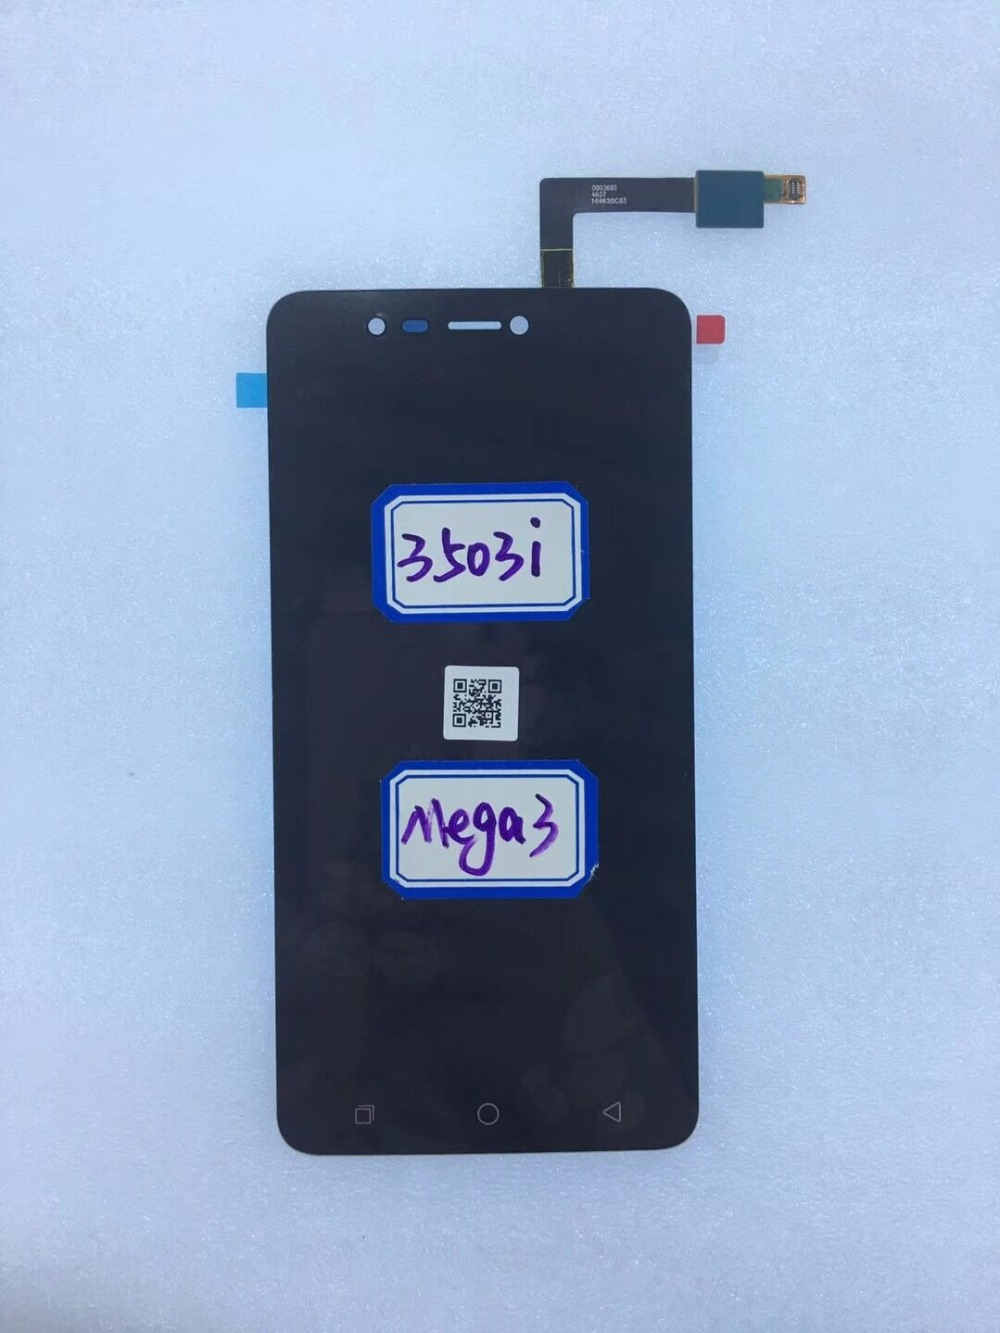 US $24 59 |Original 100% Tested For Coolpad Mega 3 3503I 5 5 LCD  Display+Touch Digitizer Screen Assembly Repair Parts-in Mobile Phone LCD  Screens from